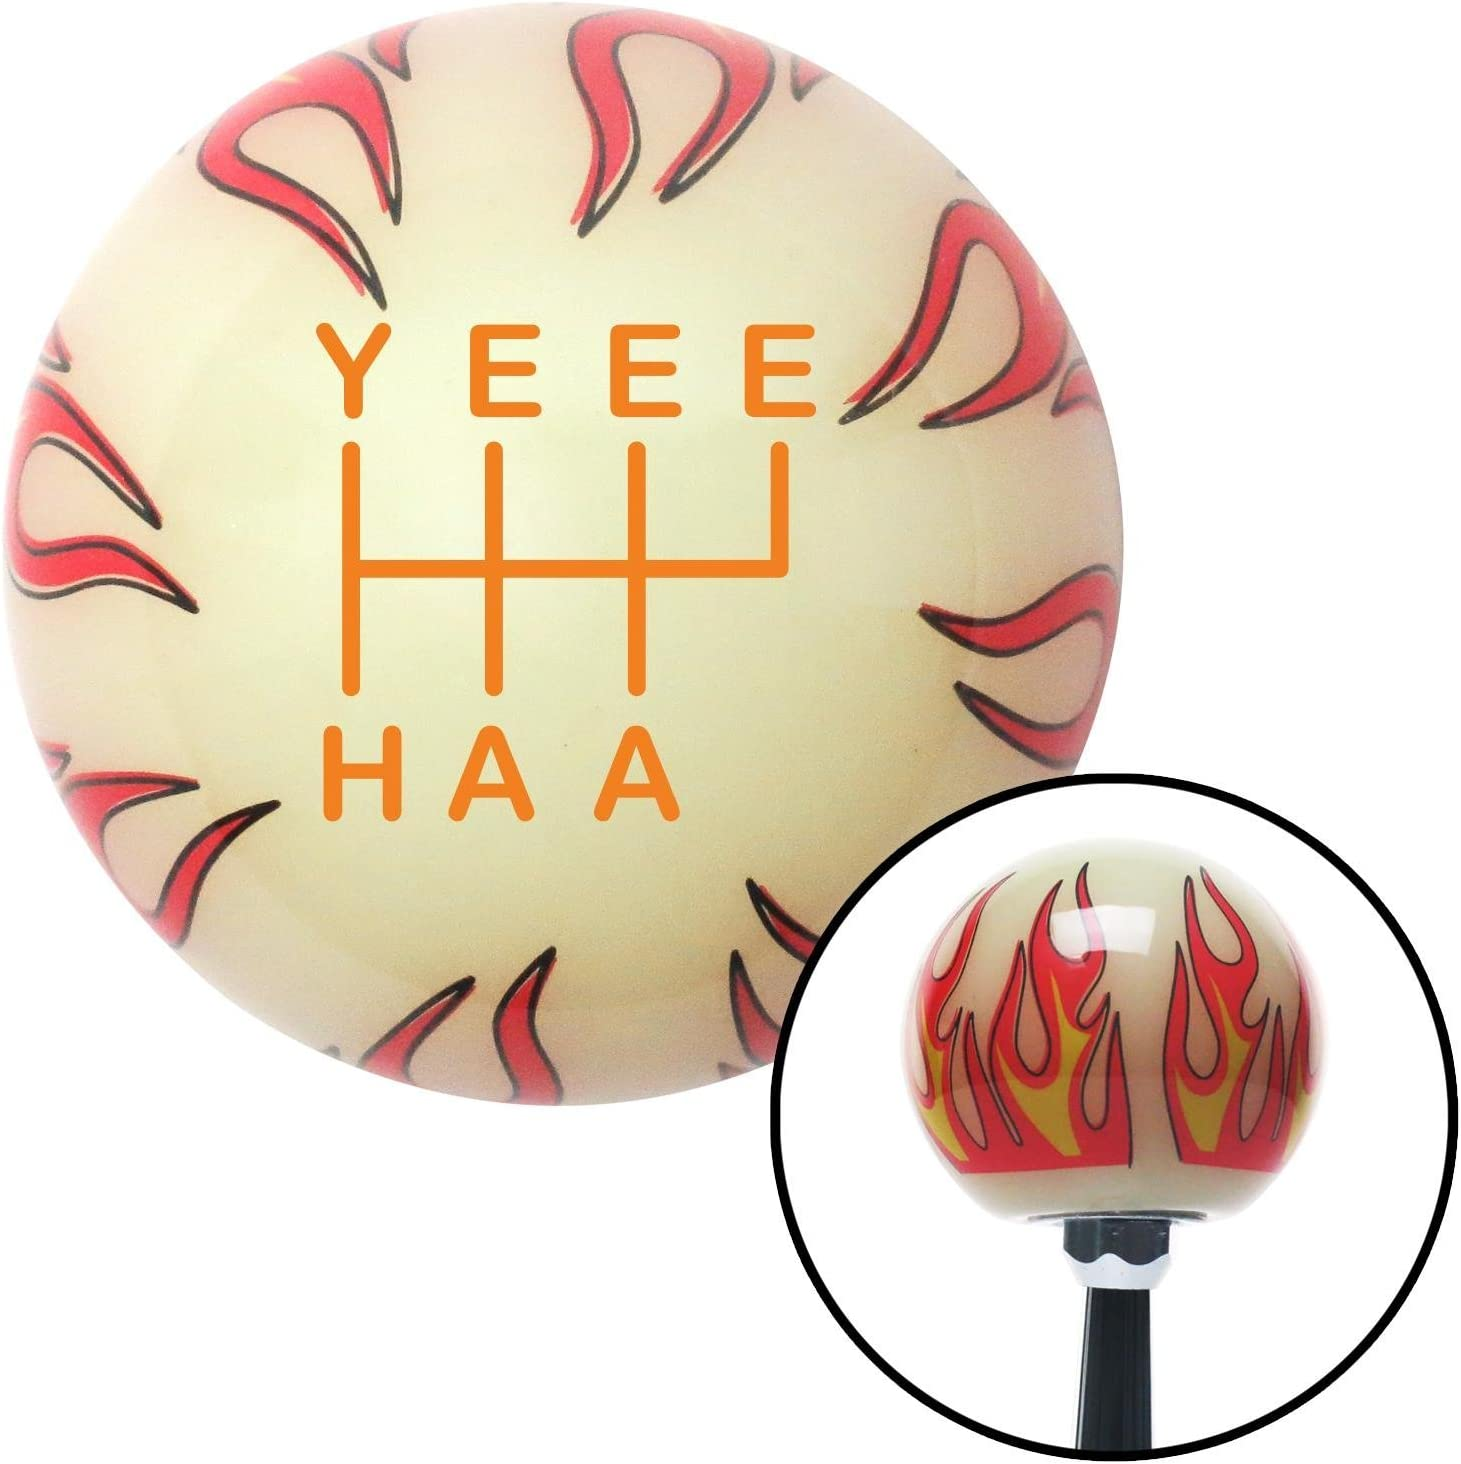 American Shifter 302195 Shift Knob Orange YeeeHaa 6 Speed RUR Ivory Flame with M16 x 1.5 Insert